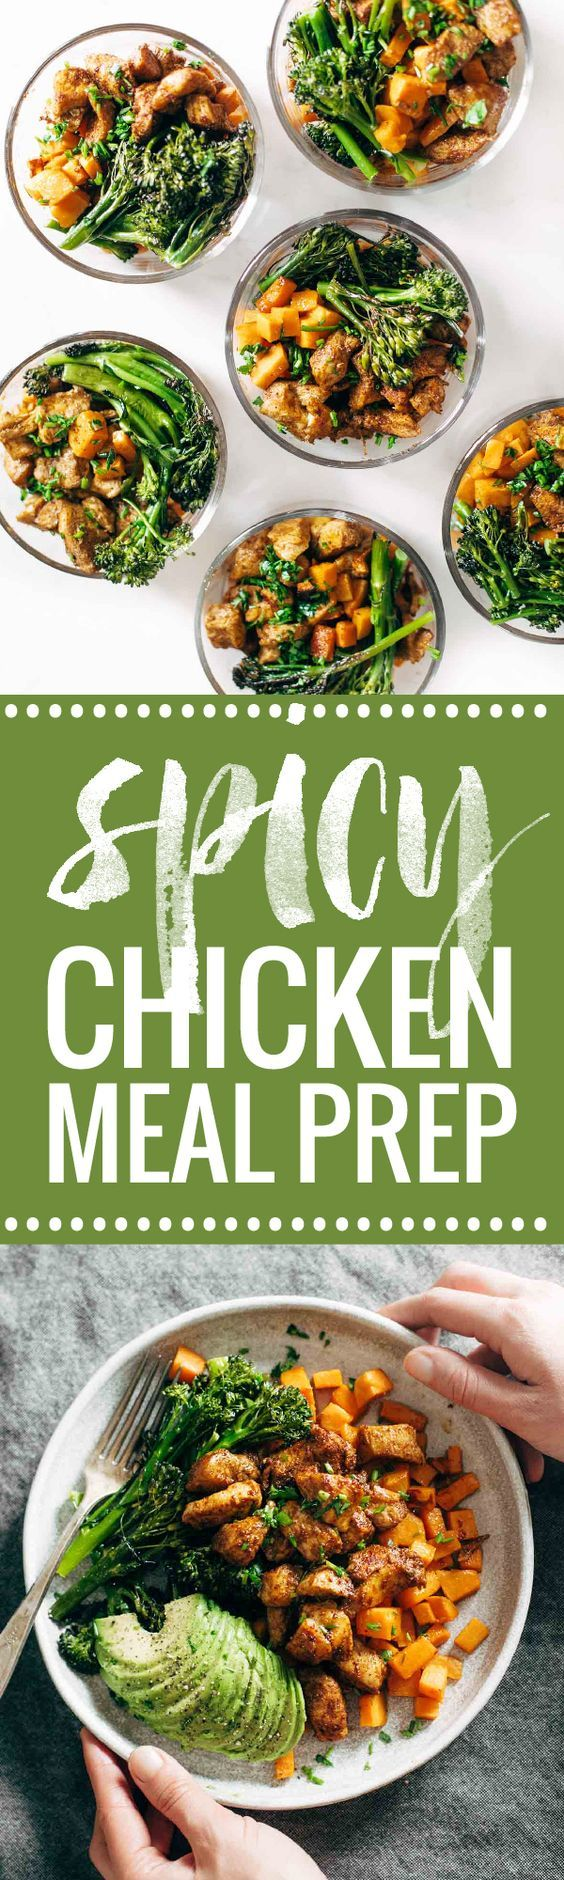 Spicy Chicken and Sweet Potato Meal Prep Magic! 3 big sheet pans + 45 minutes = healthy meals for a week! | pinchofyum.com